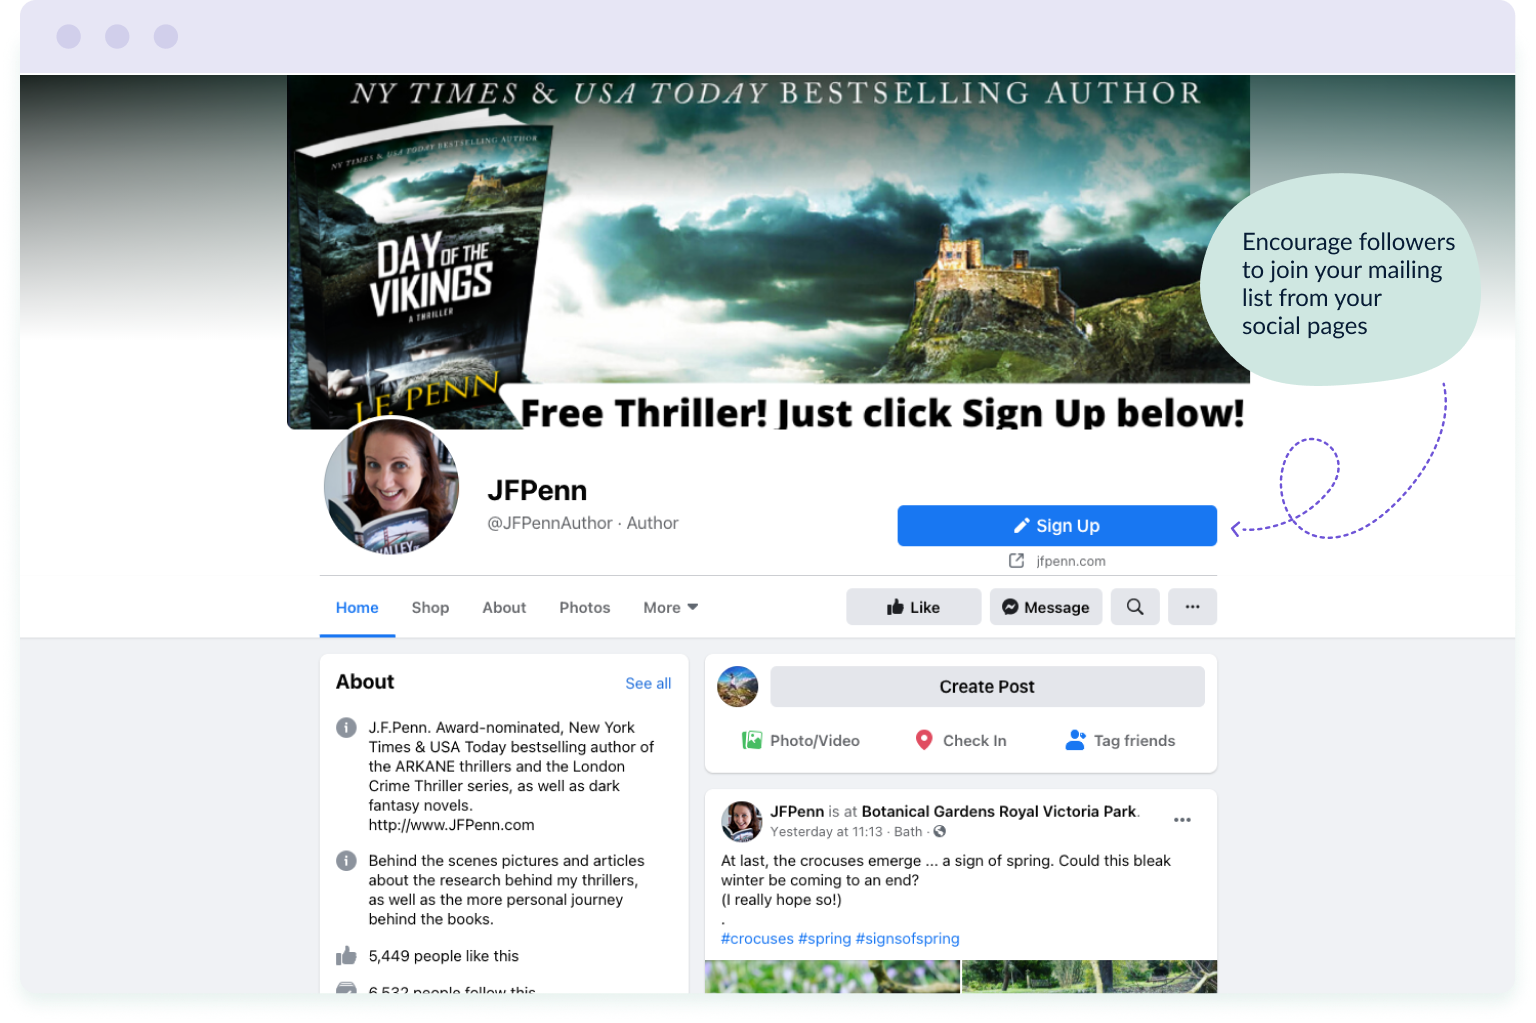 Example of an author driving traffic to her mailing list from her social media pages